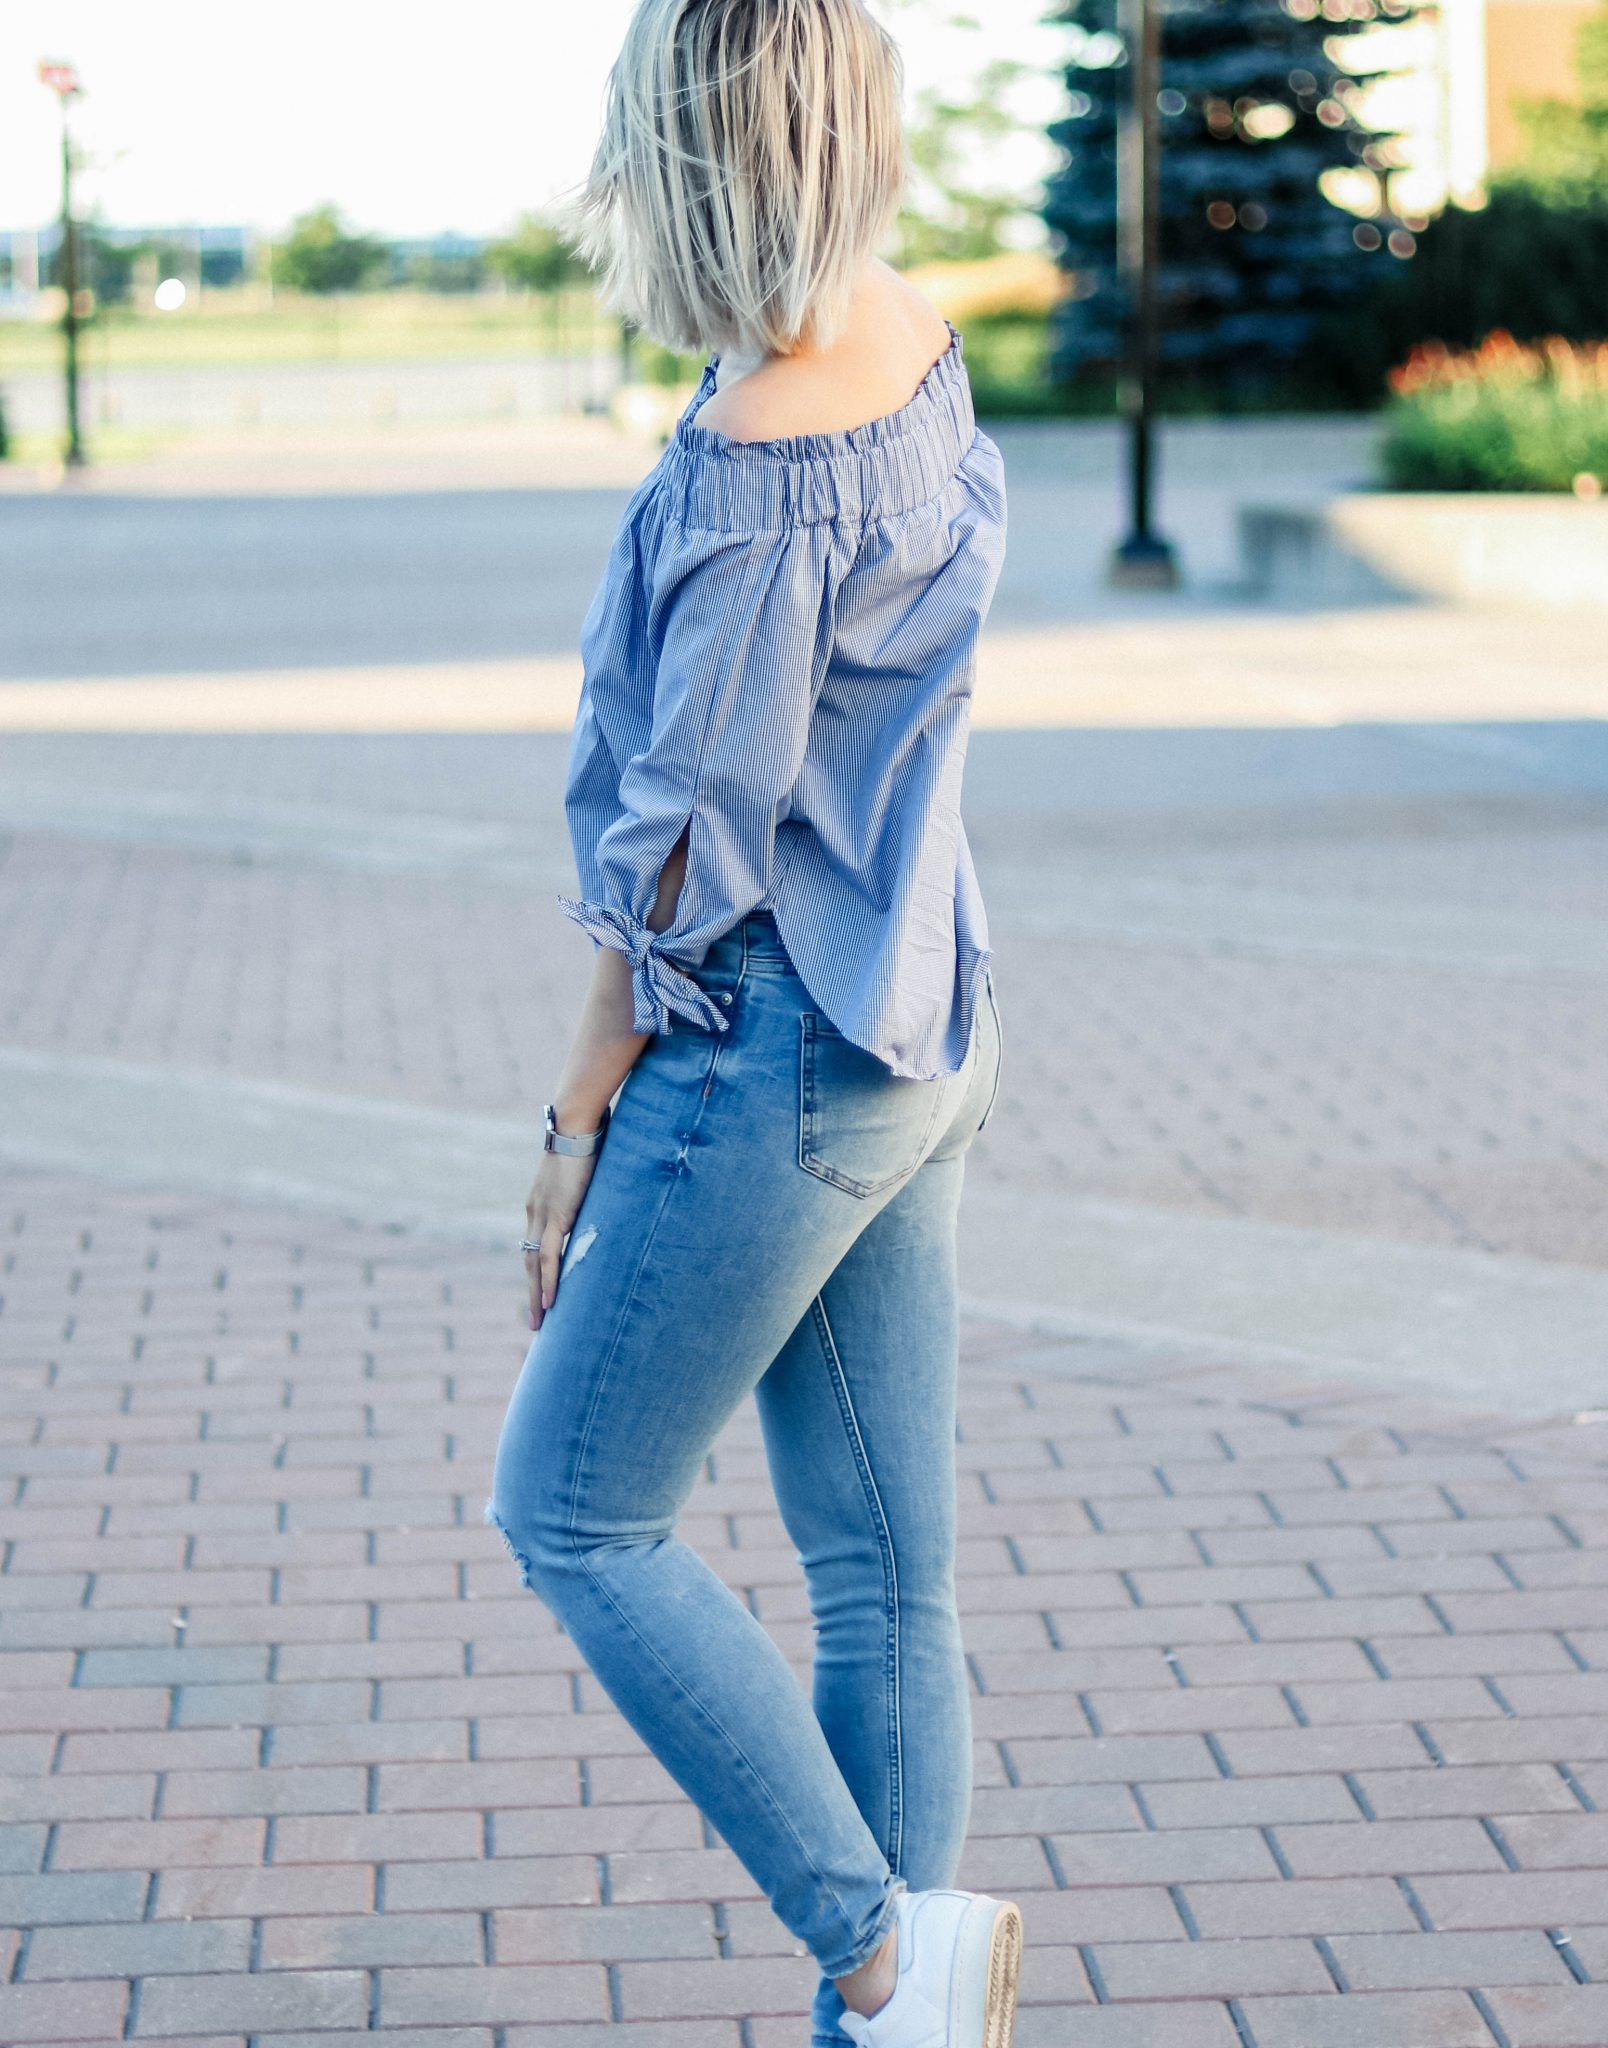 h&m off shoulder top & denim